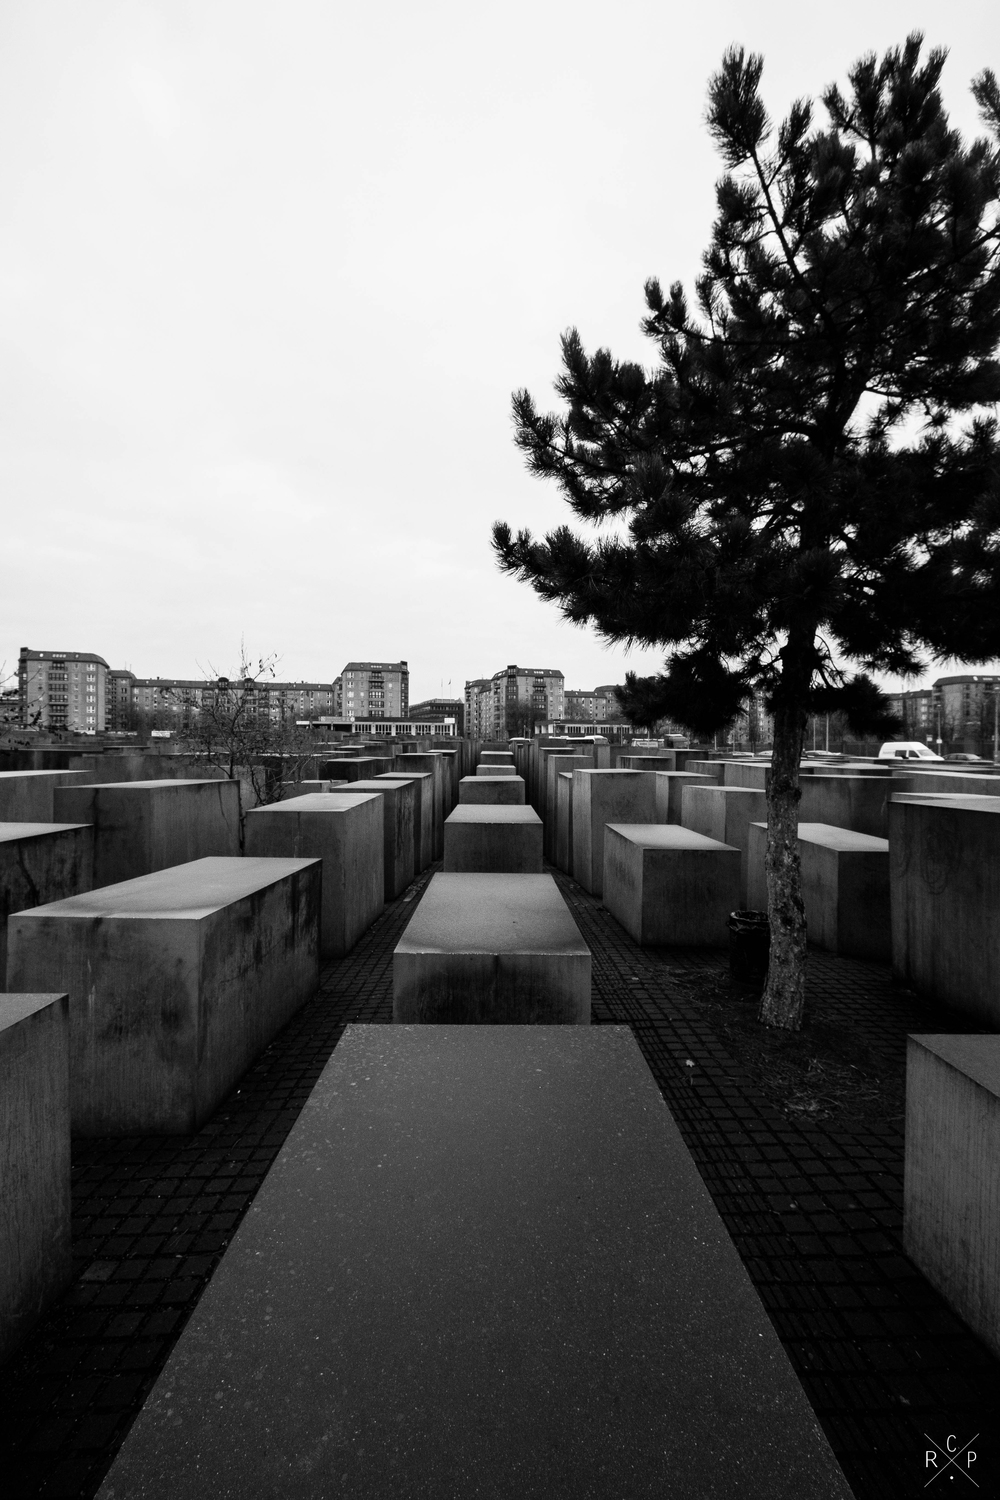 Memorial Field 1 - Memorial To The Murdered Jews Of Europe, Berlin, Germany 02/12/2015